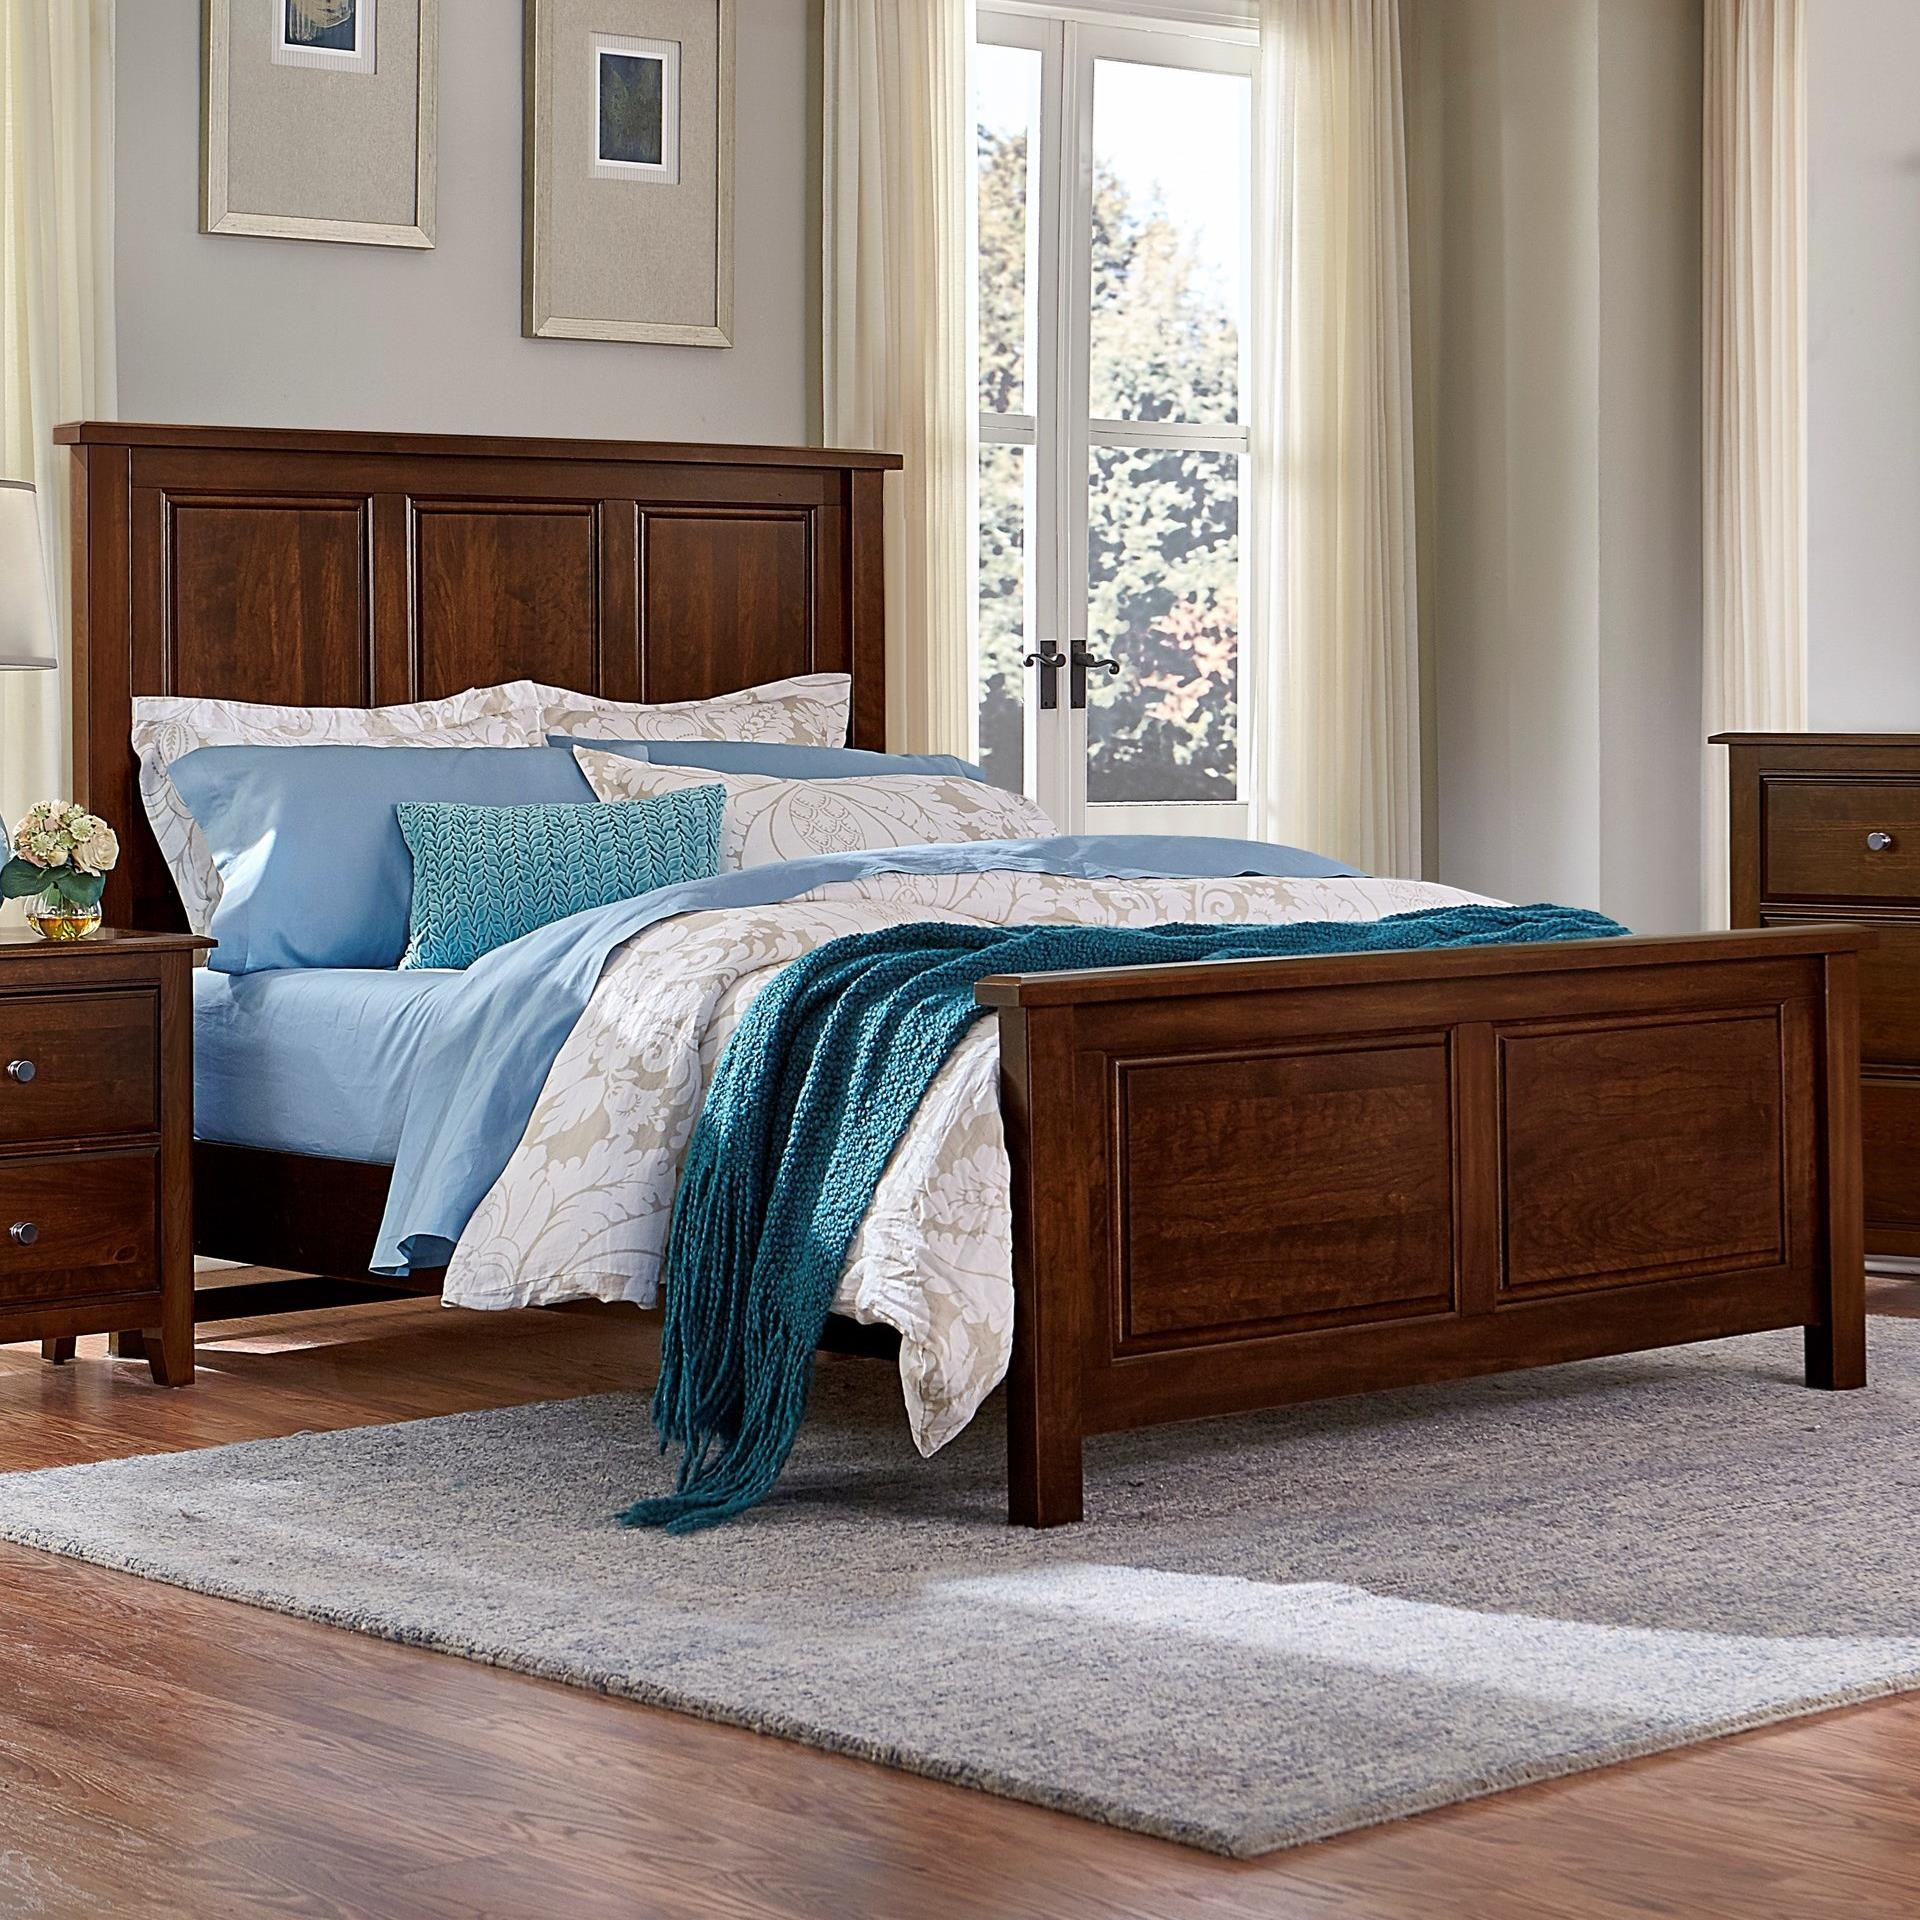 Artisan Choices King Panel Bed by Artisan & Post at Zak's Home